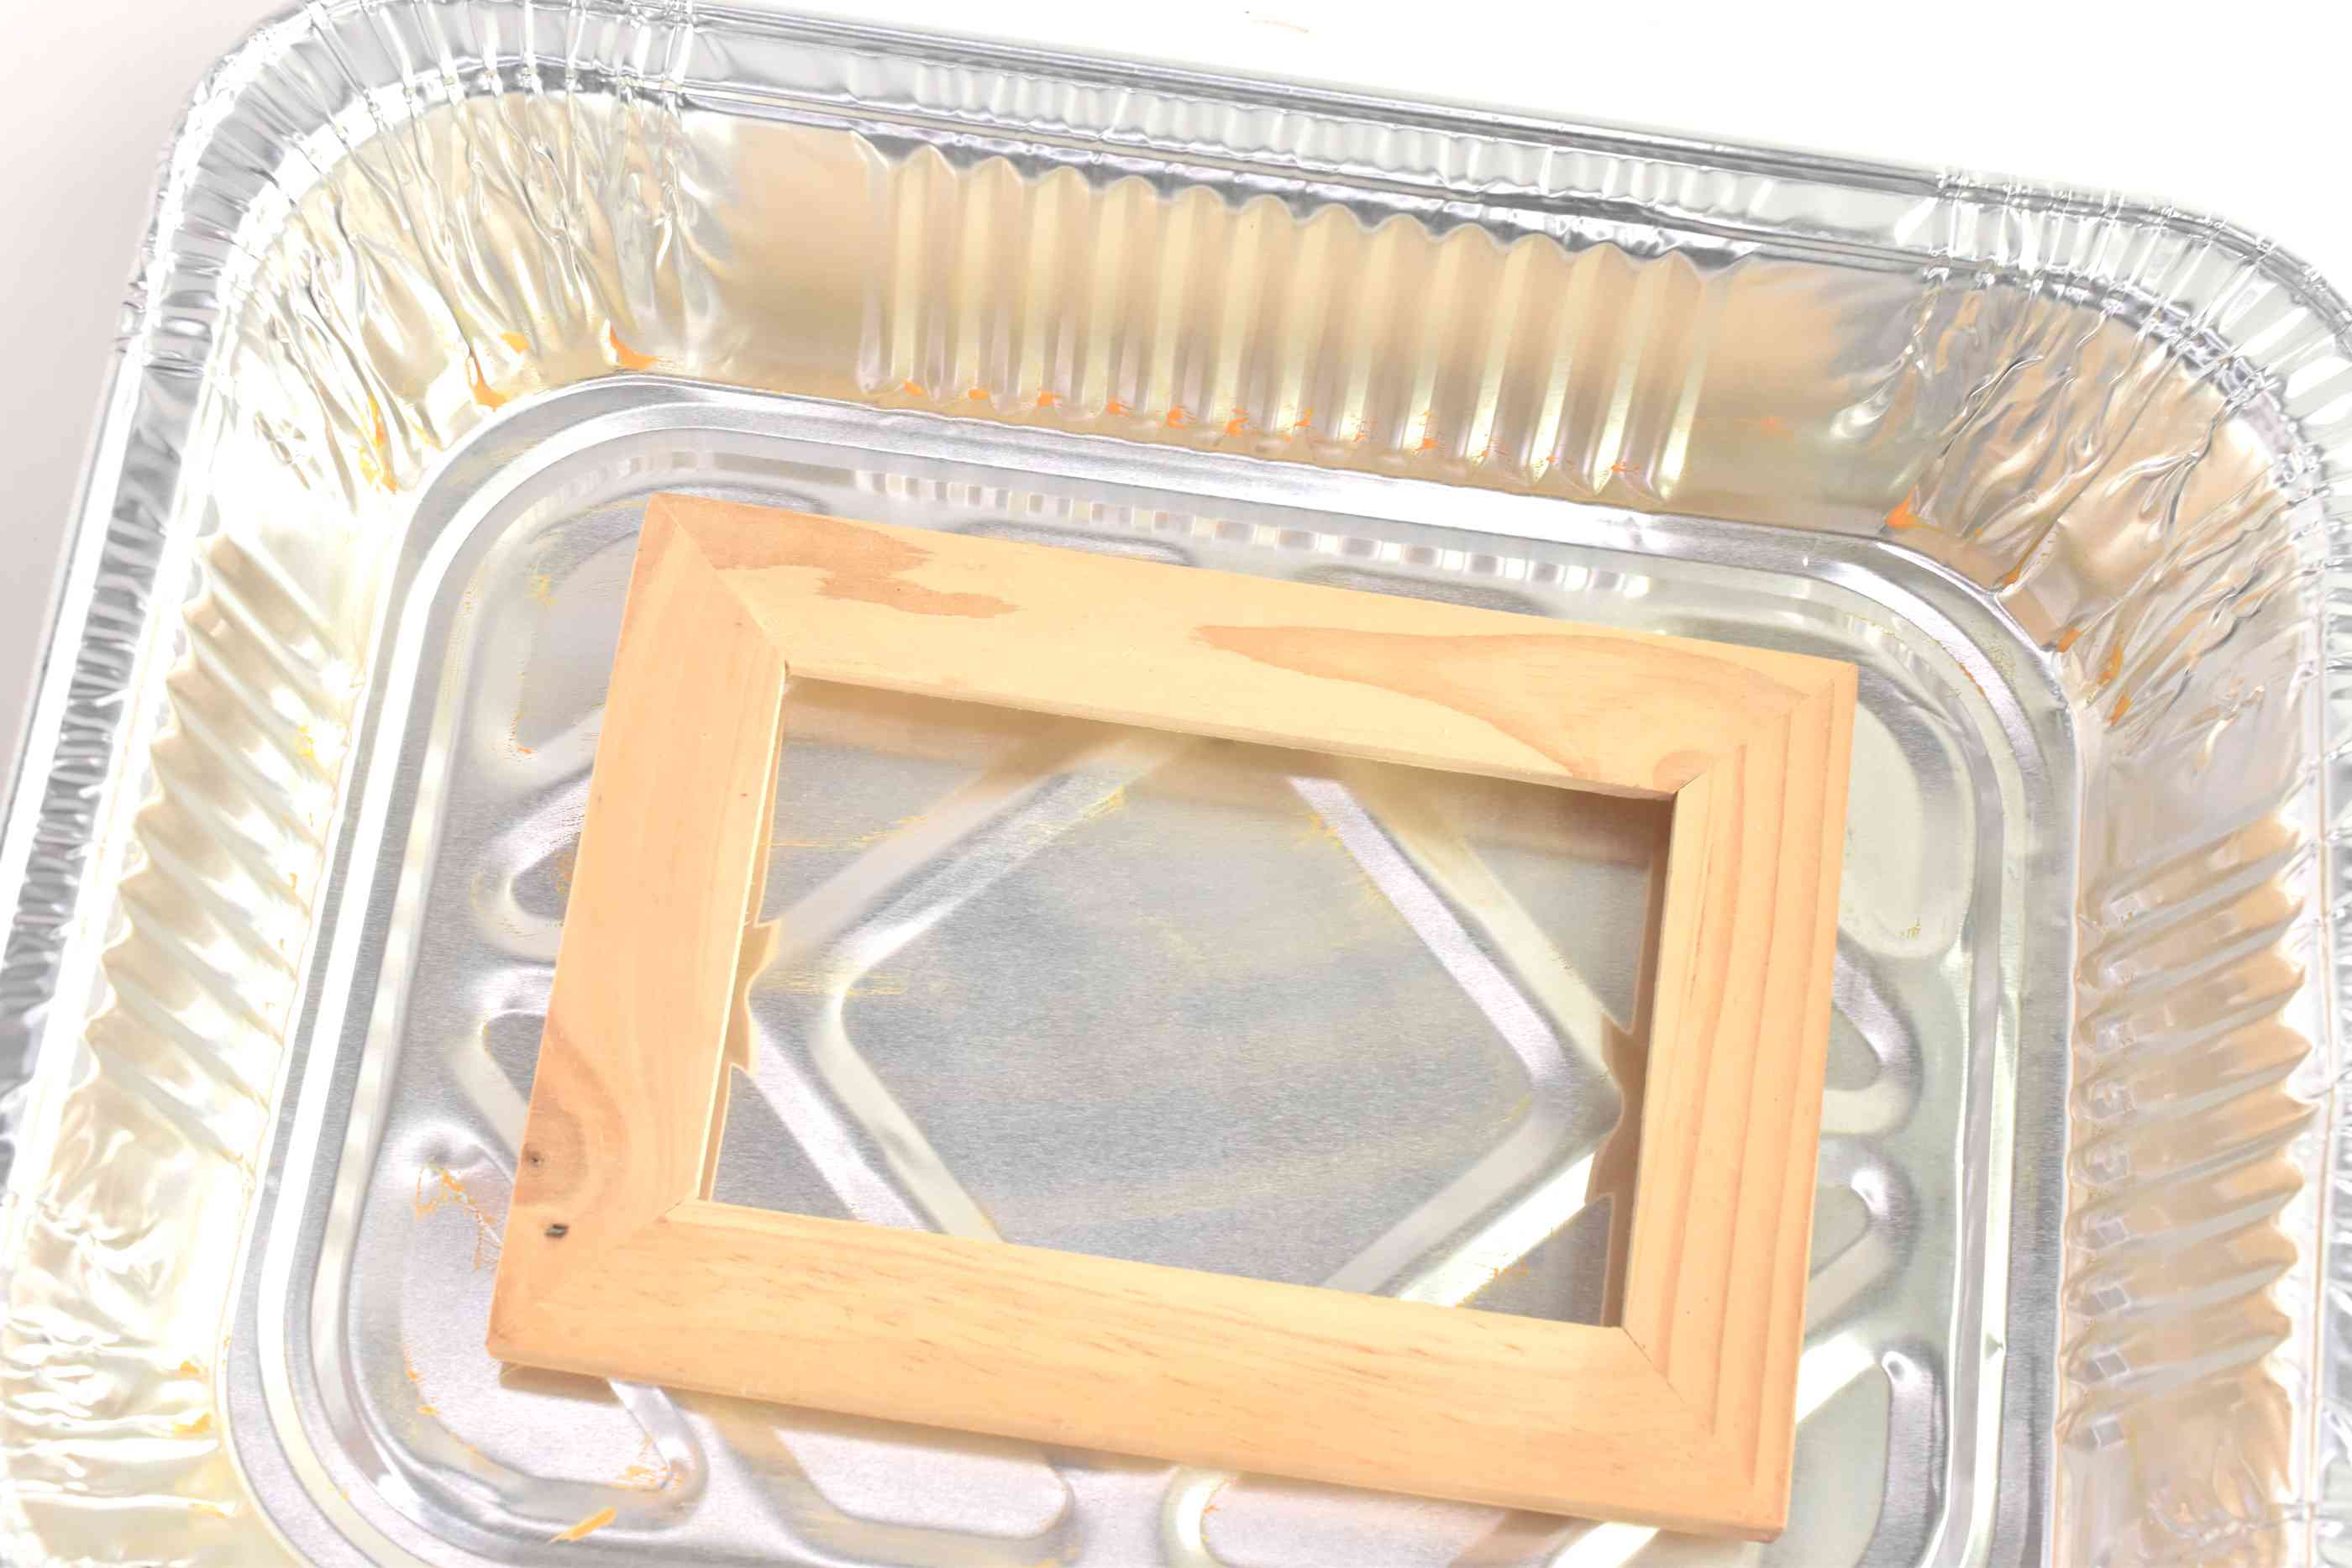 Plain wooden picture frame in a metal tray